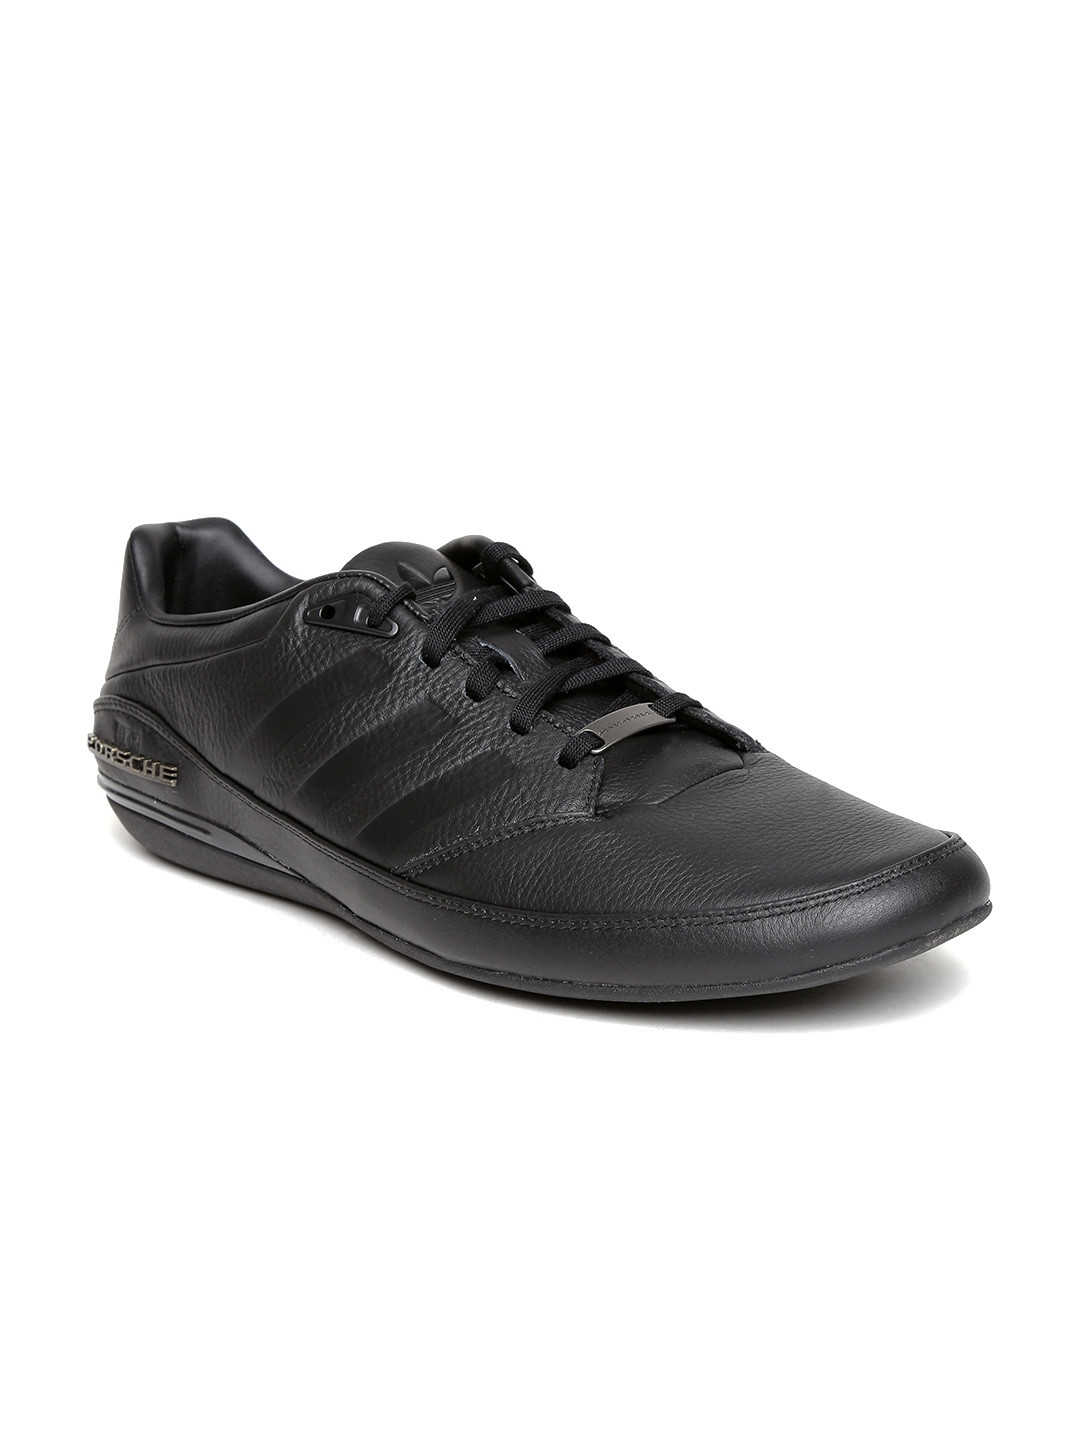 best service 31048 8b011 Porsche Design by ADIDAS Originals Men Black Leather Casual Shoes